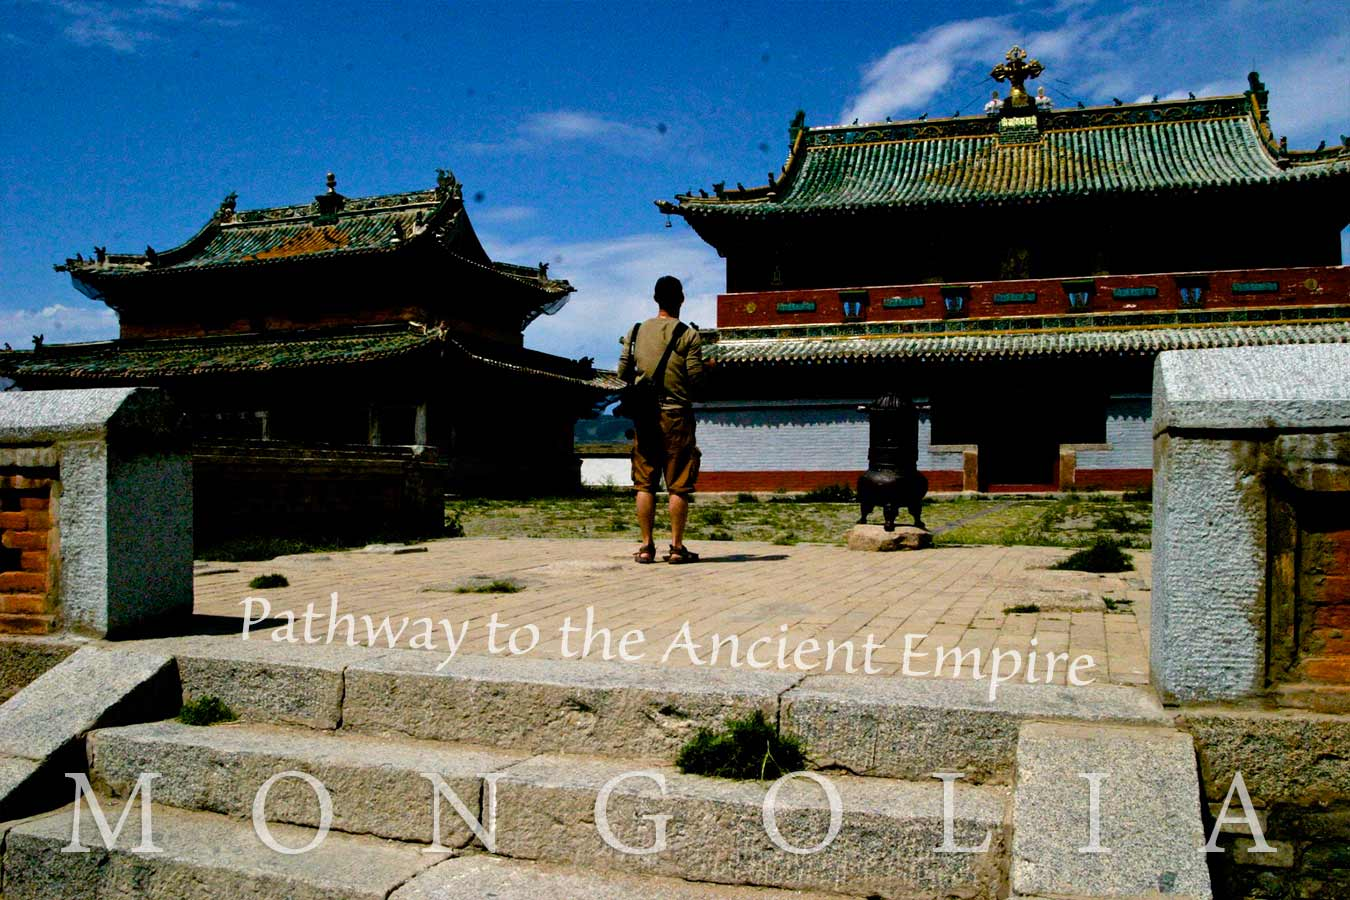 GER to GER Mongolia - Pathway to the Ancient Empire